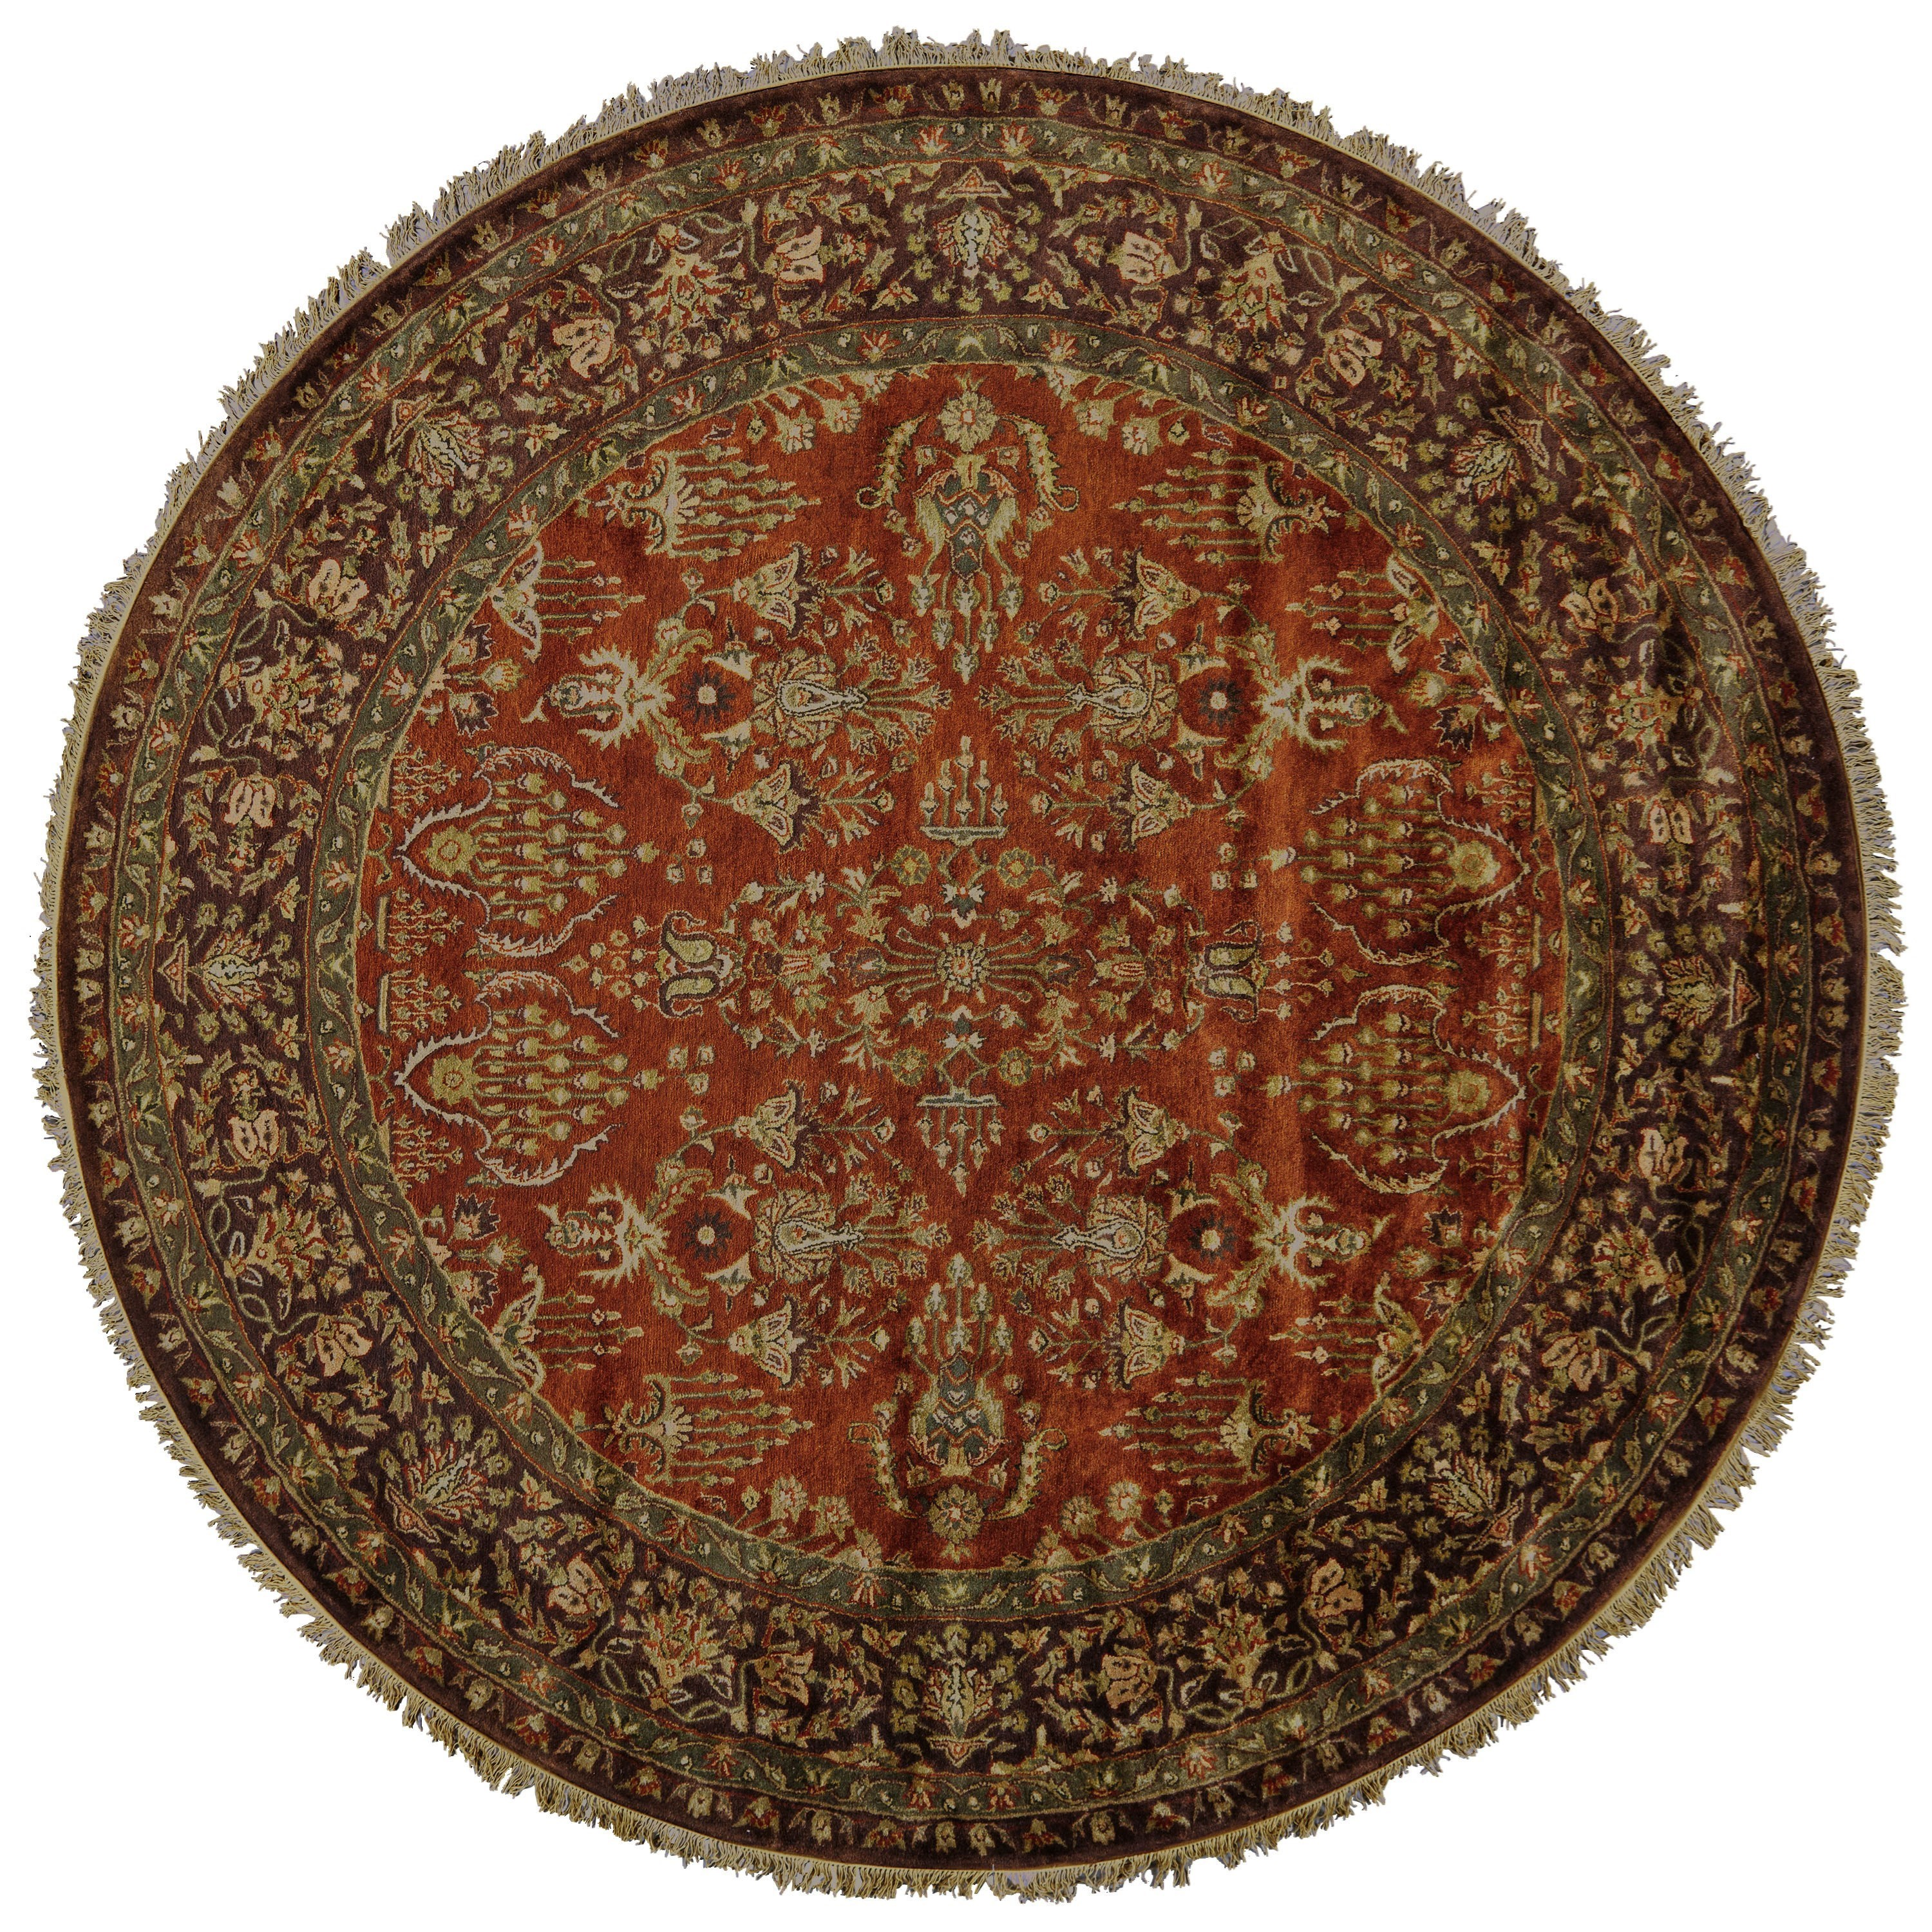 Amore Cinnamon/Plum 8' x 8' Round Area Rug by Feizy Rugs at Jacksonville Furniture Mart